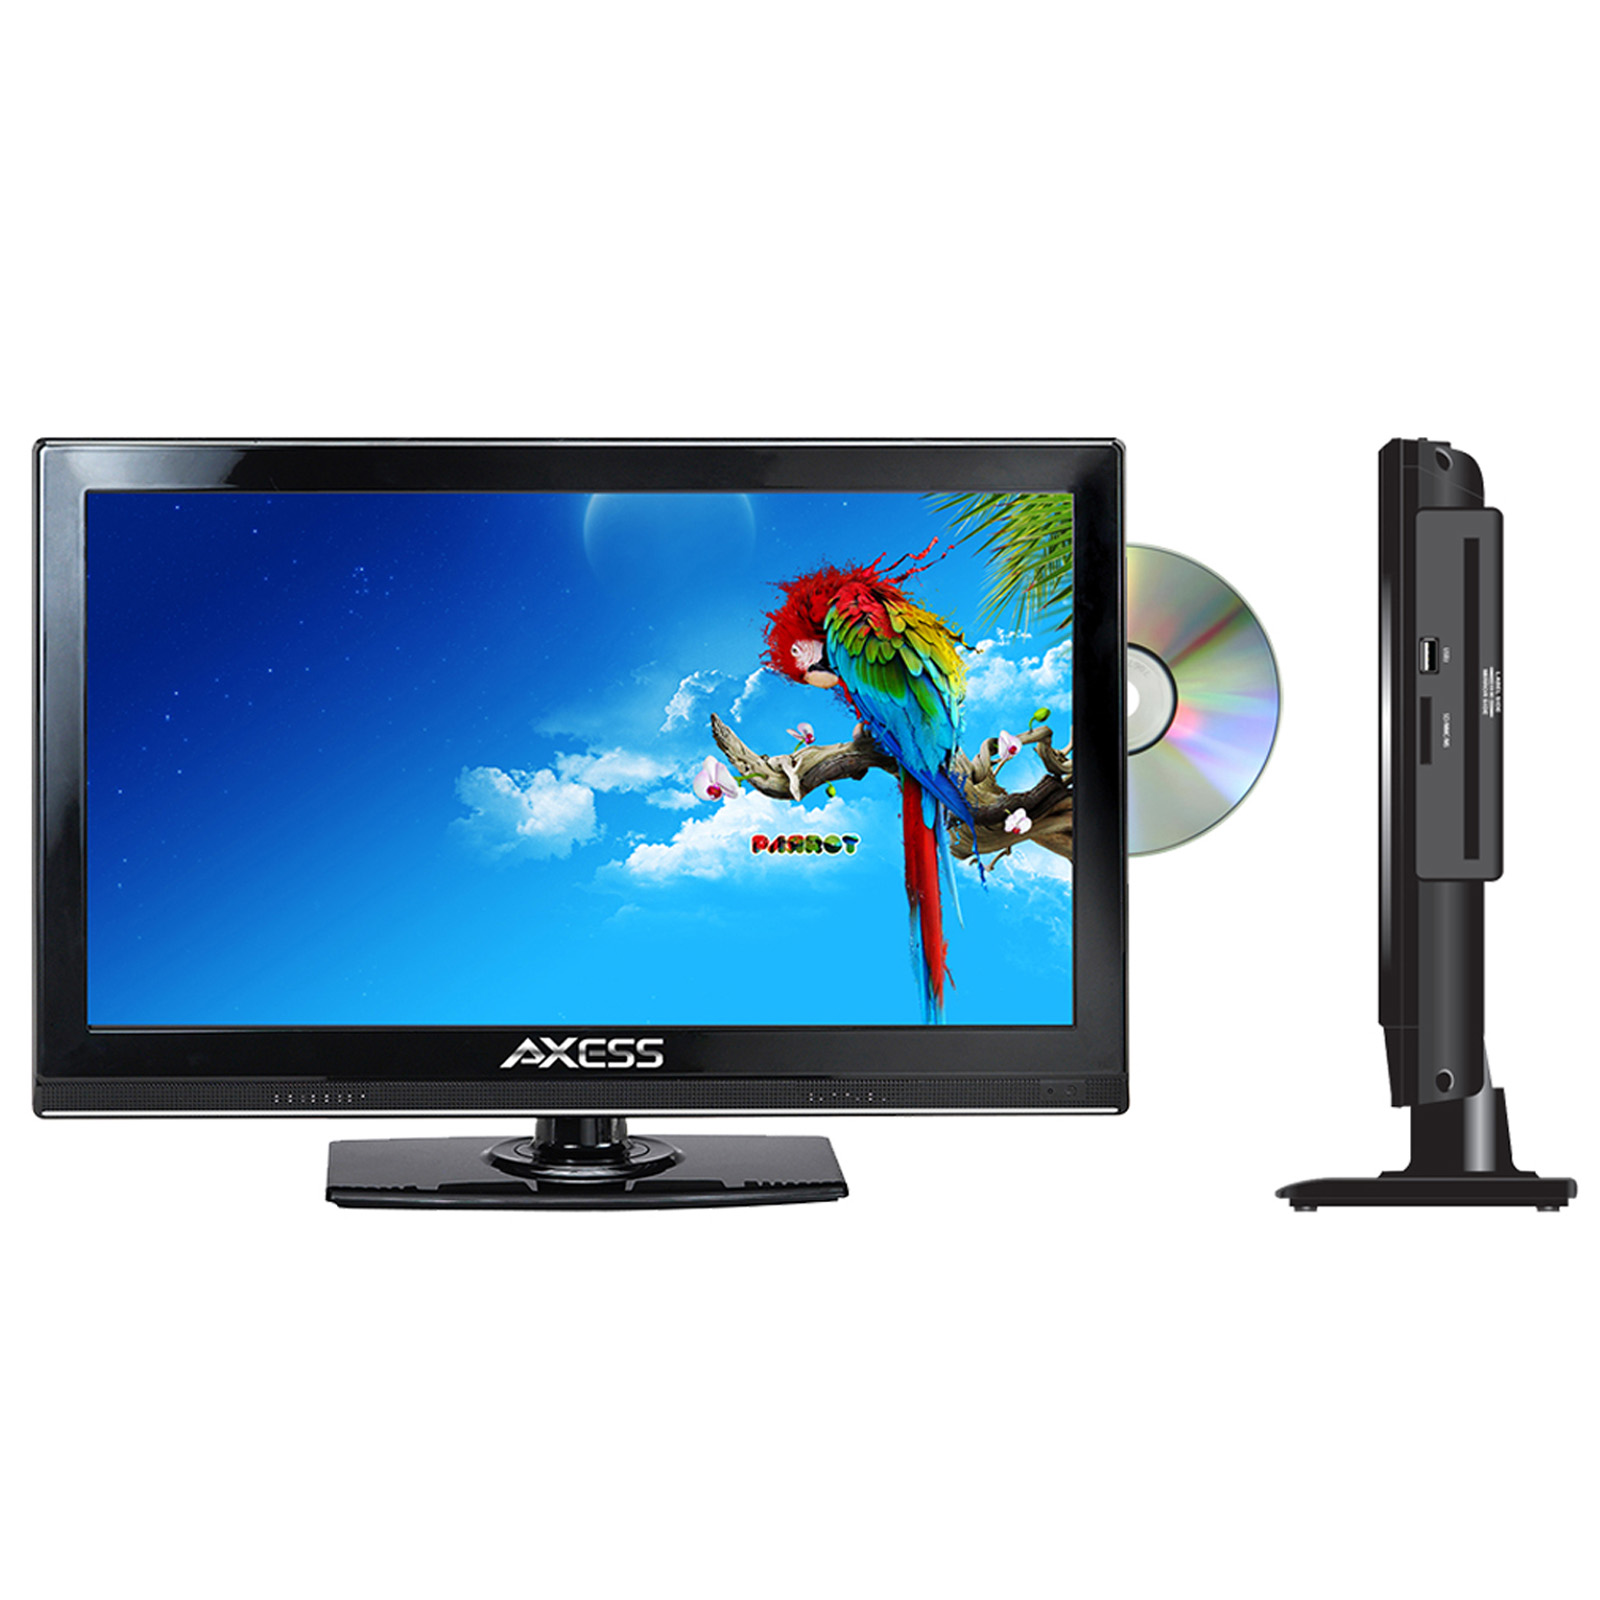 Axess 133 Class Hd 720p Led Tv With Built In Dvd Tvd1801 13